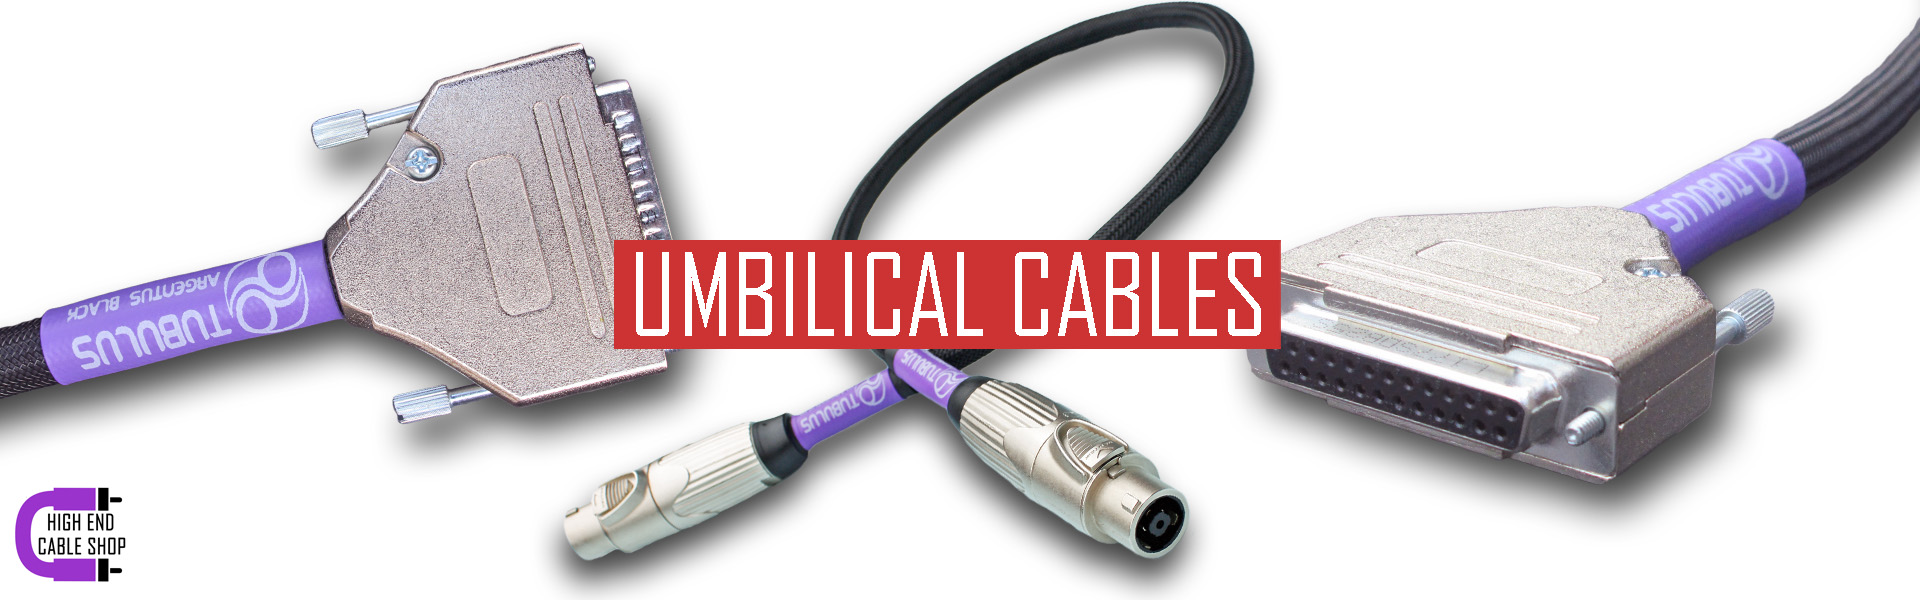 High end cable shop slide umbilical cables